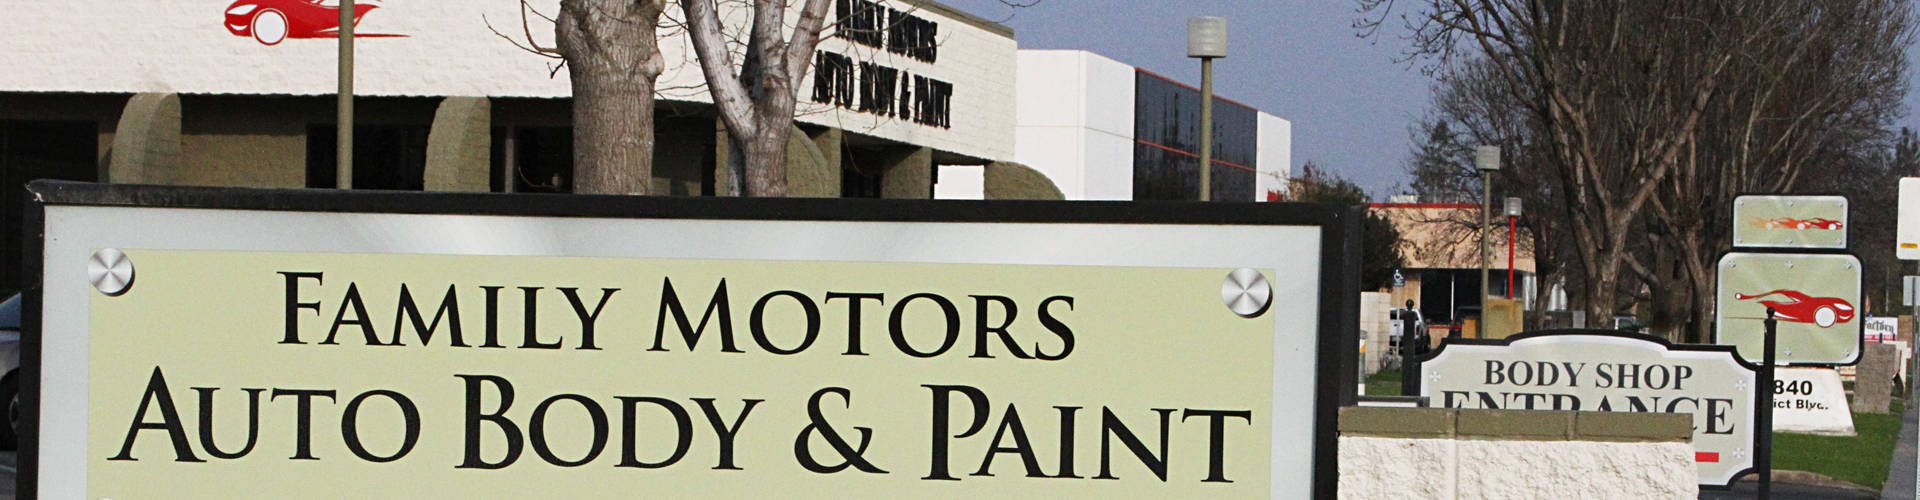 Family Motors Auto Body Paint